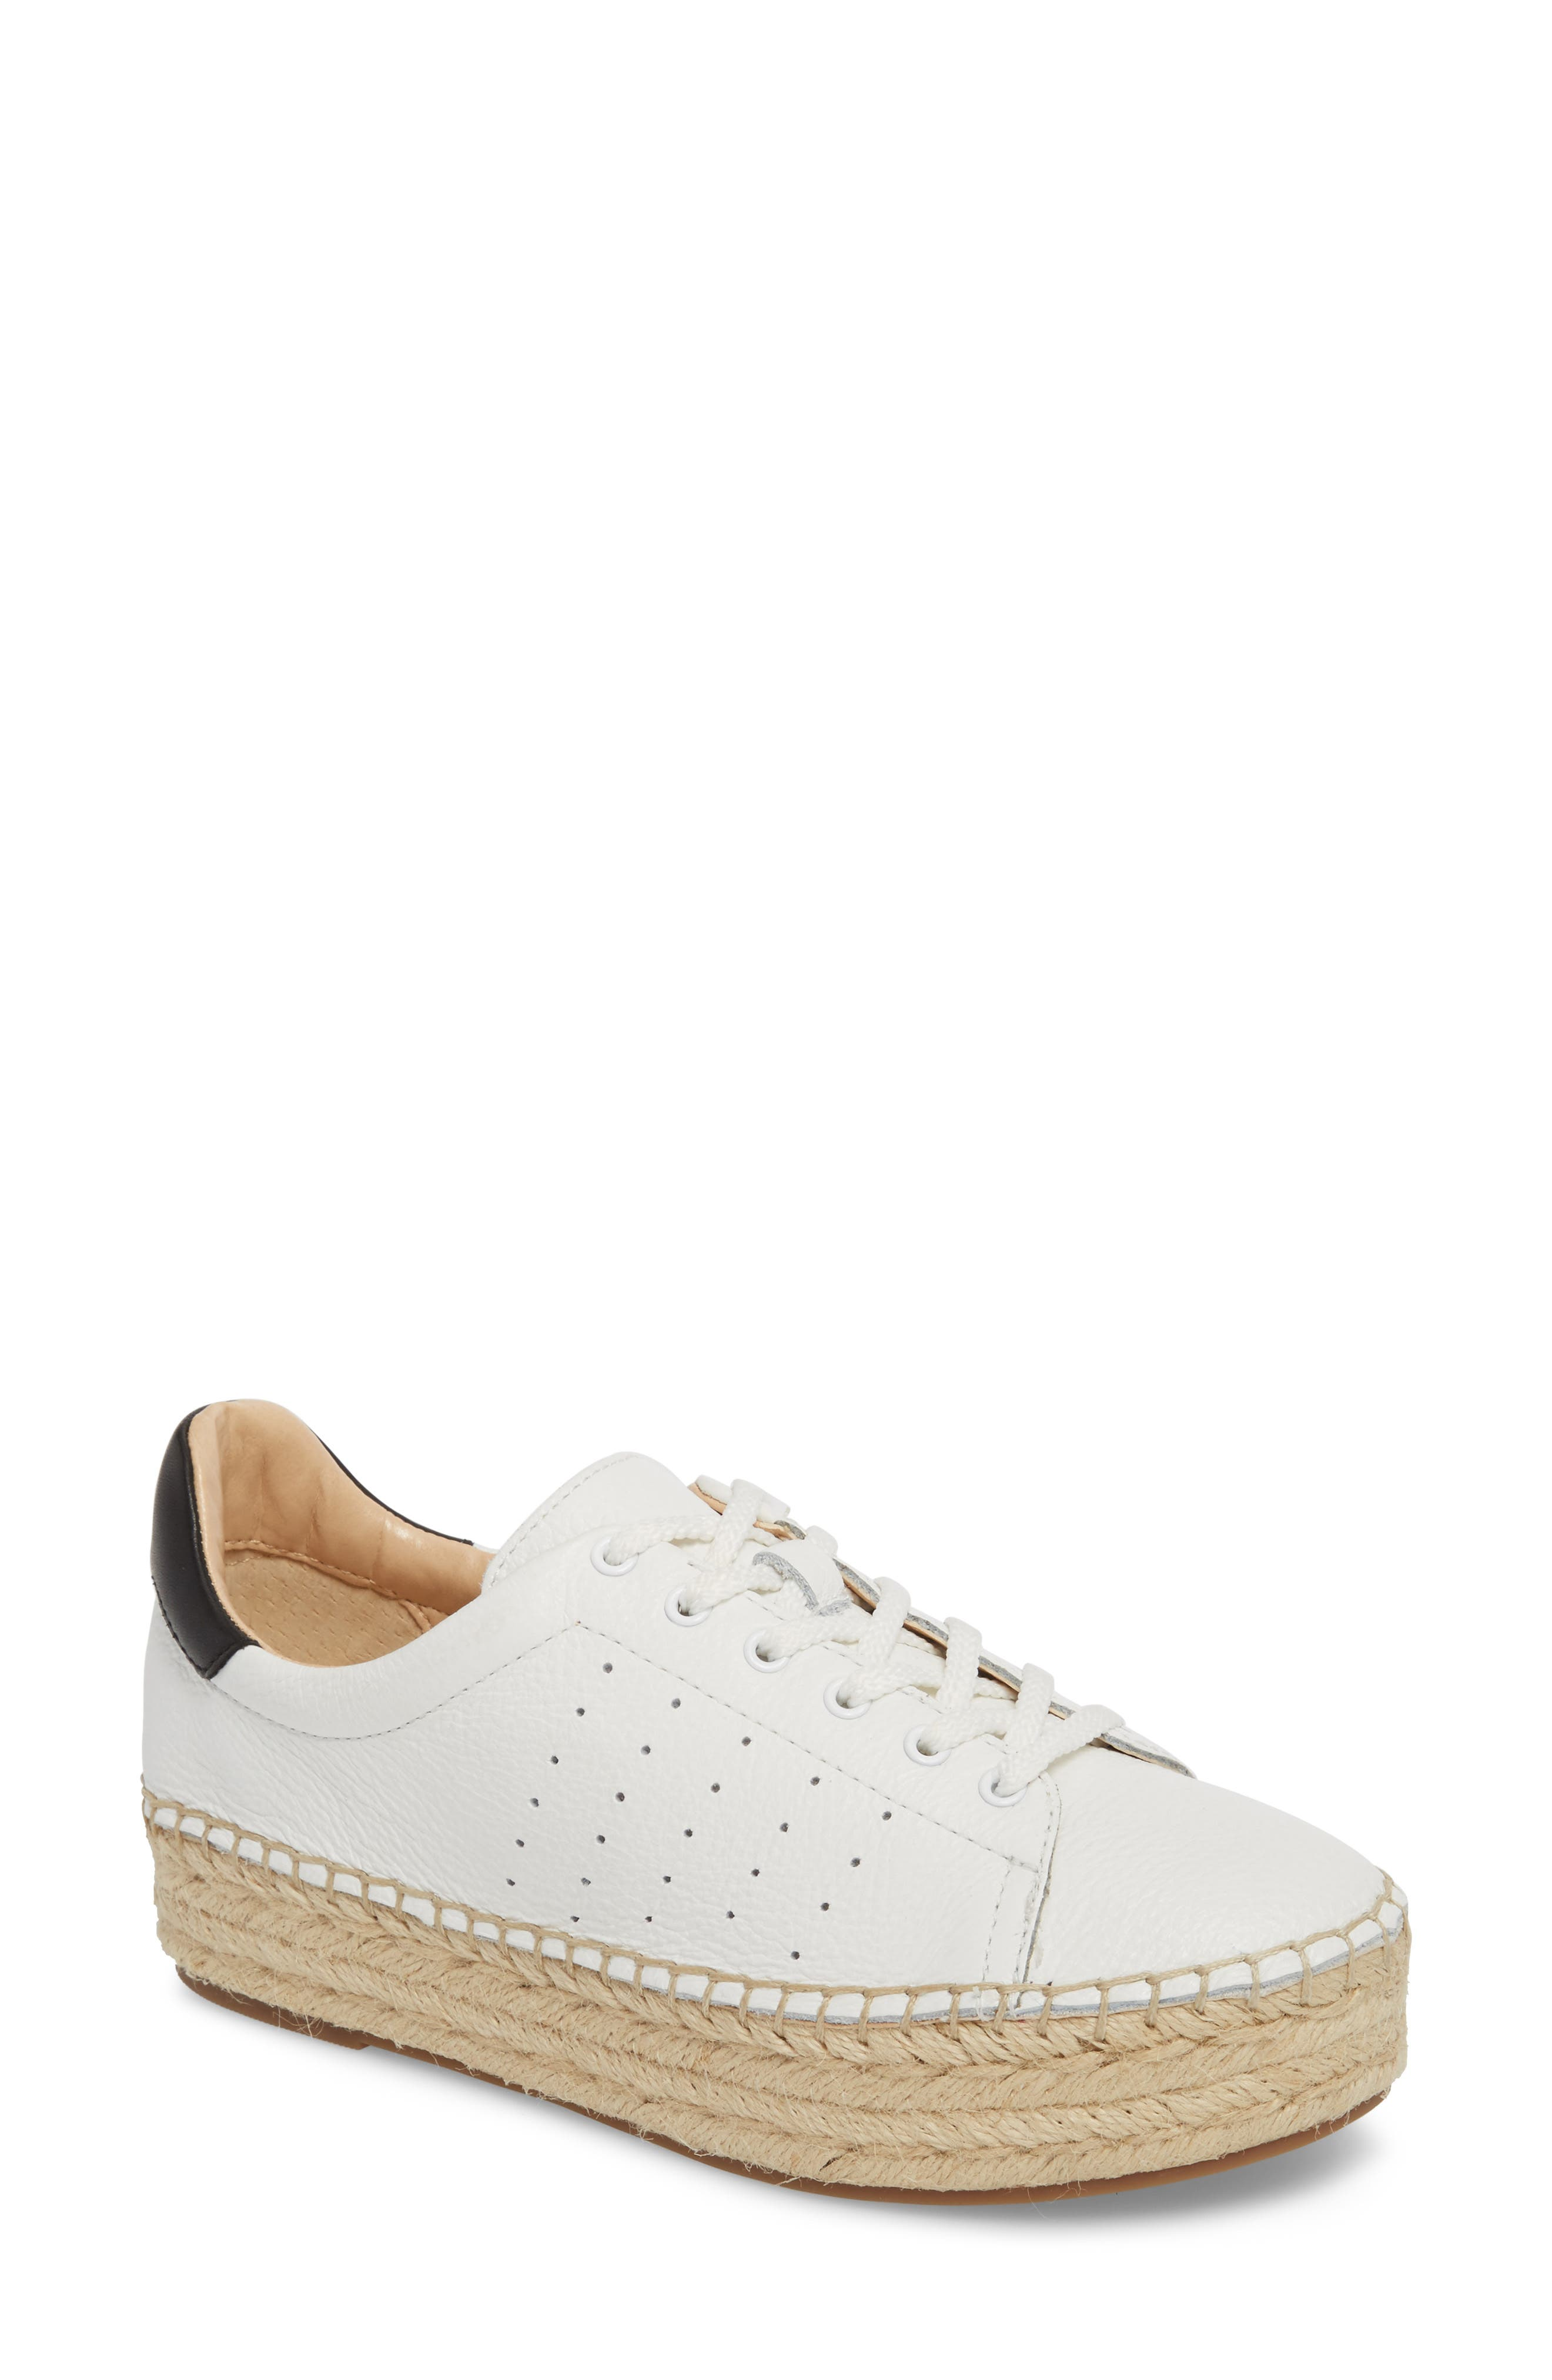 Jinnie Espadrille Sneaker,                         Main,                         color, Picket Fence